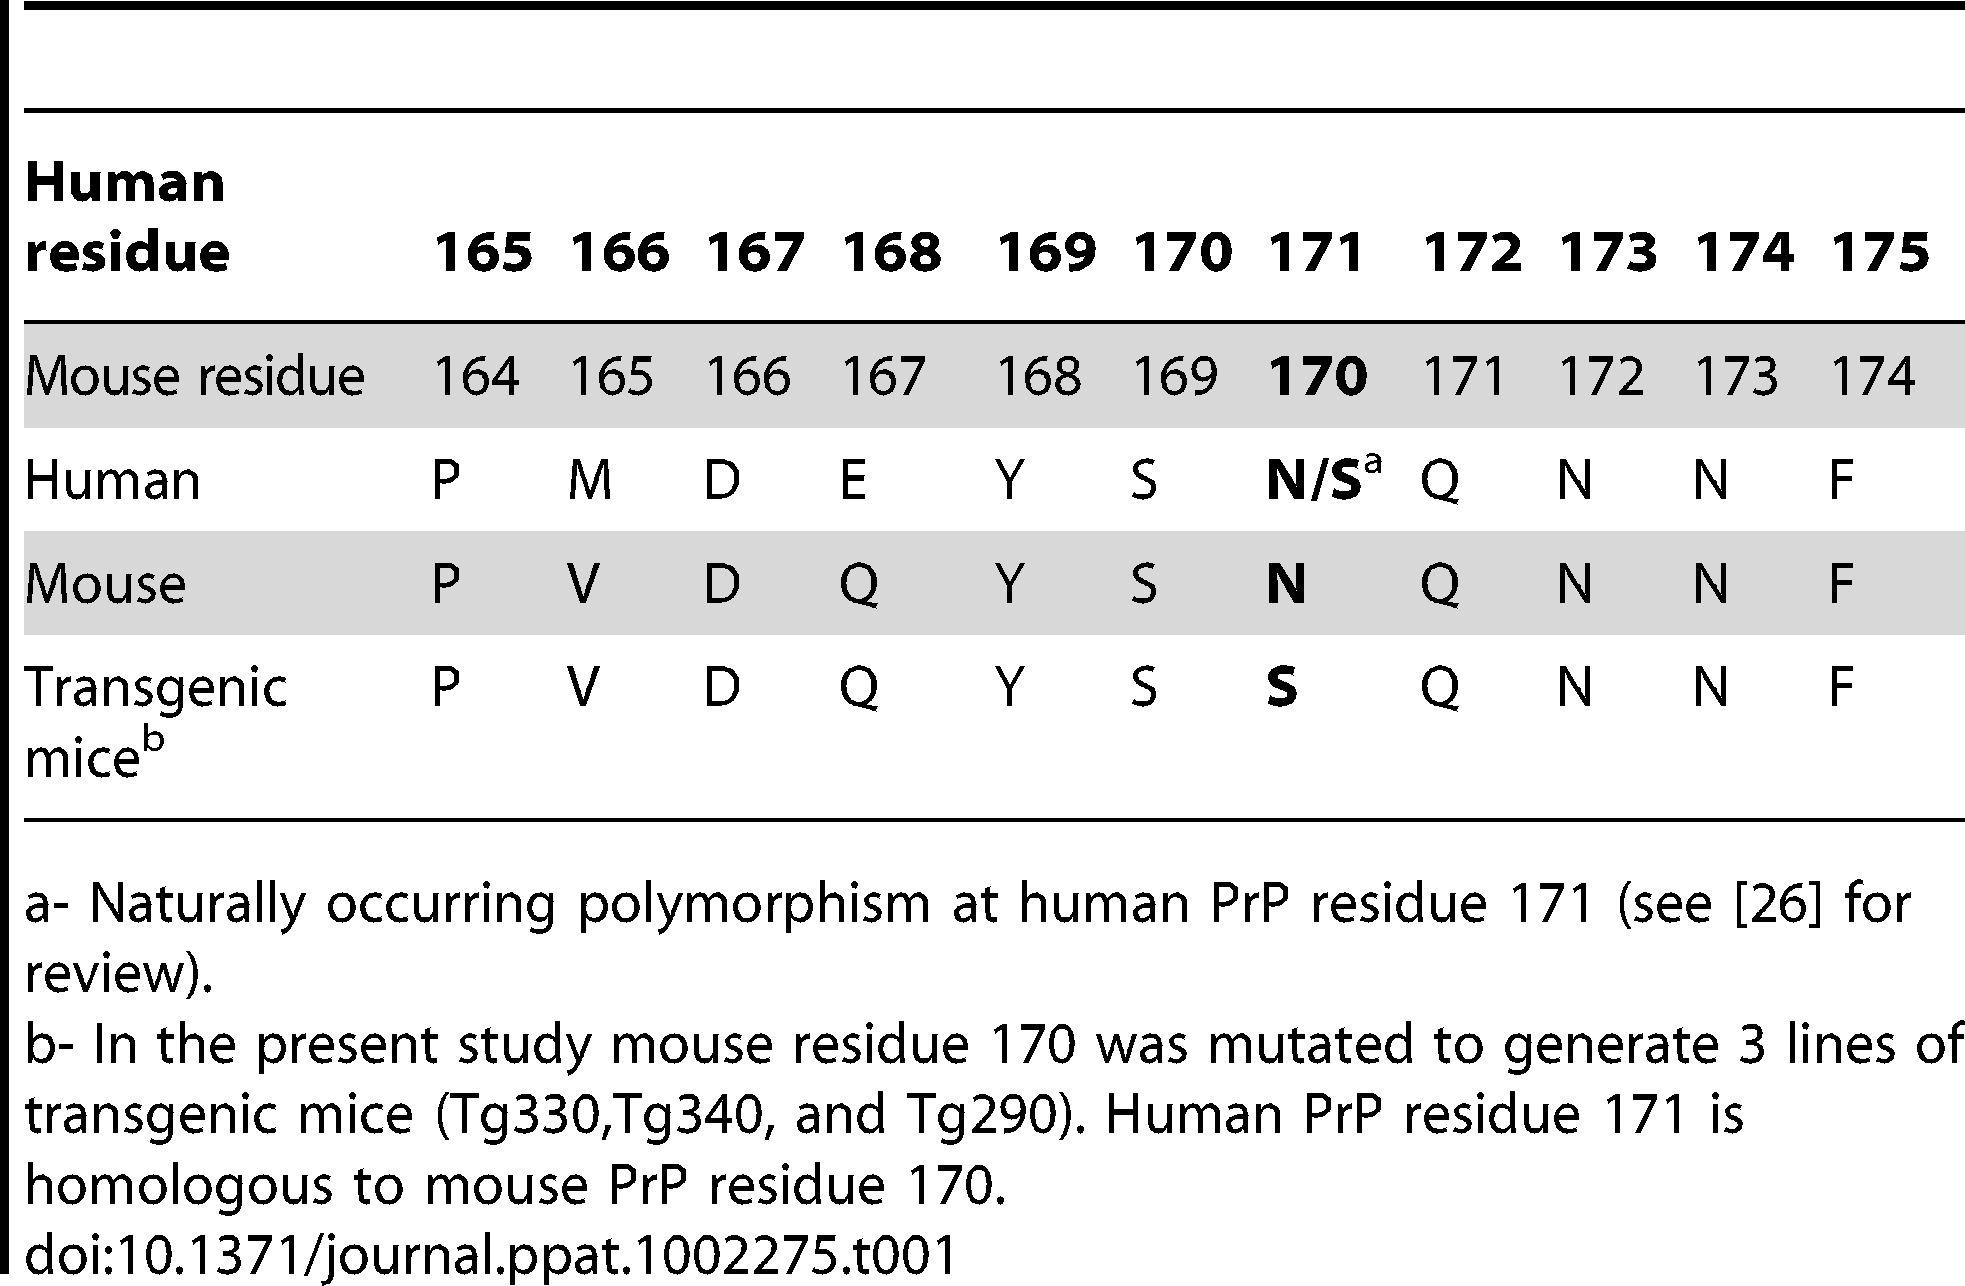 Comparison of PrP residues in humans, mice and transgenic mice generated in the present study.